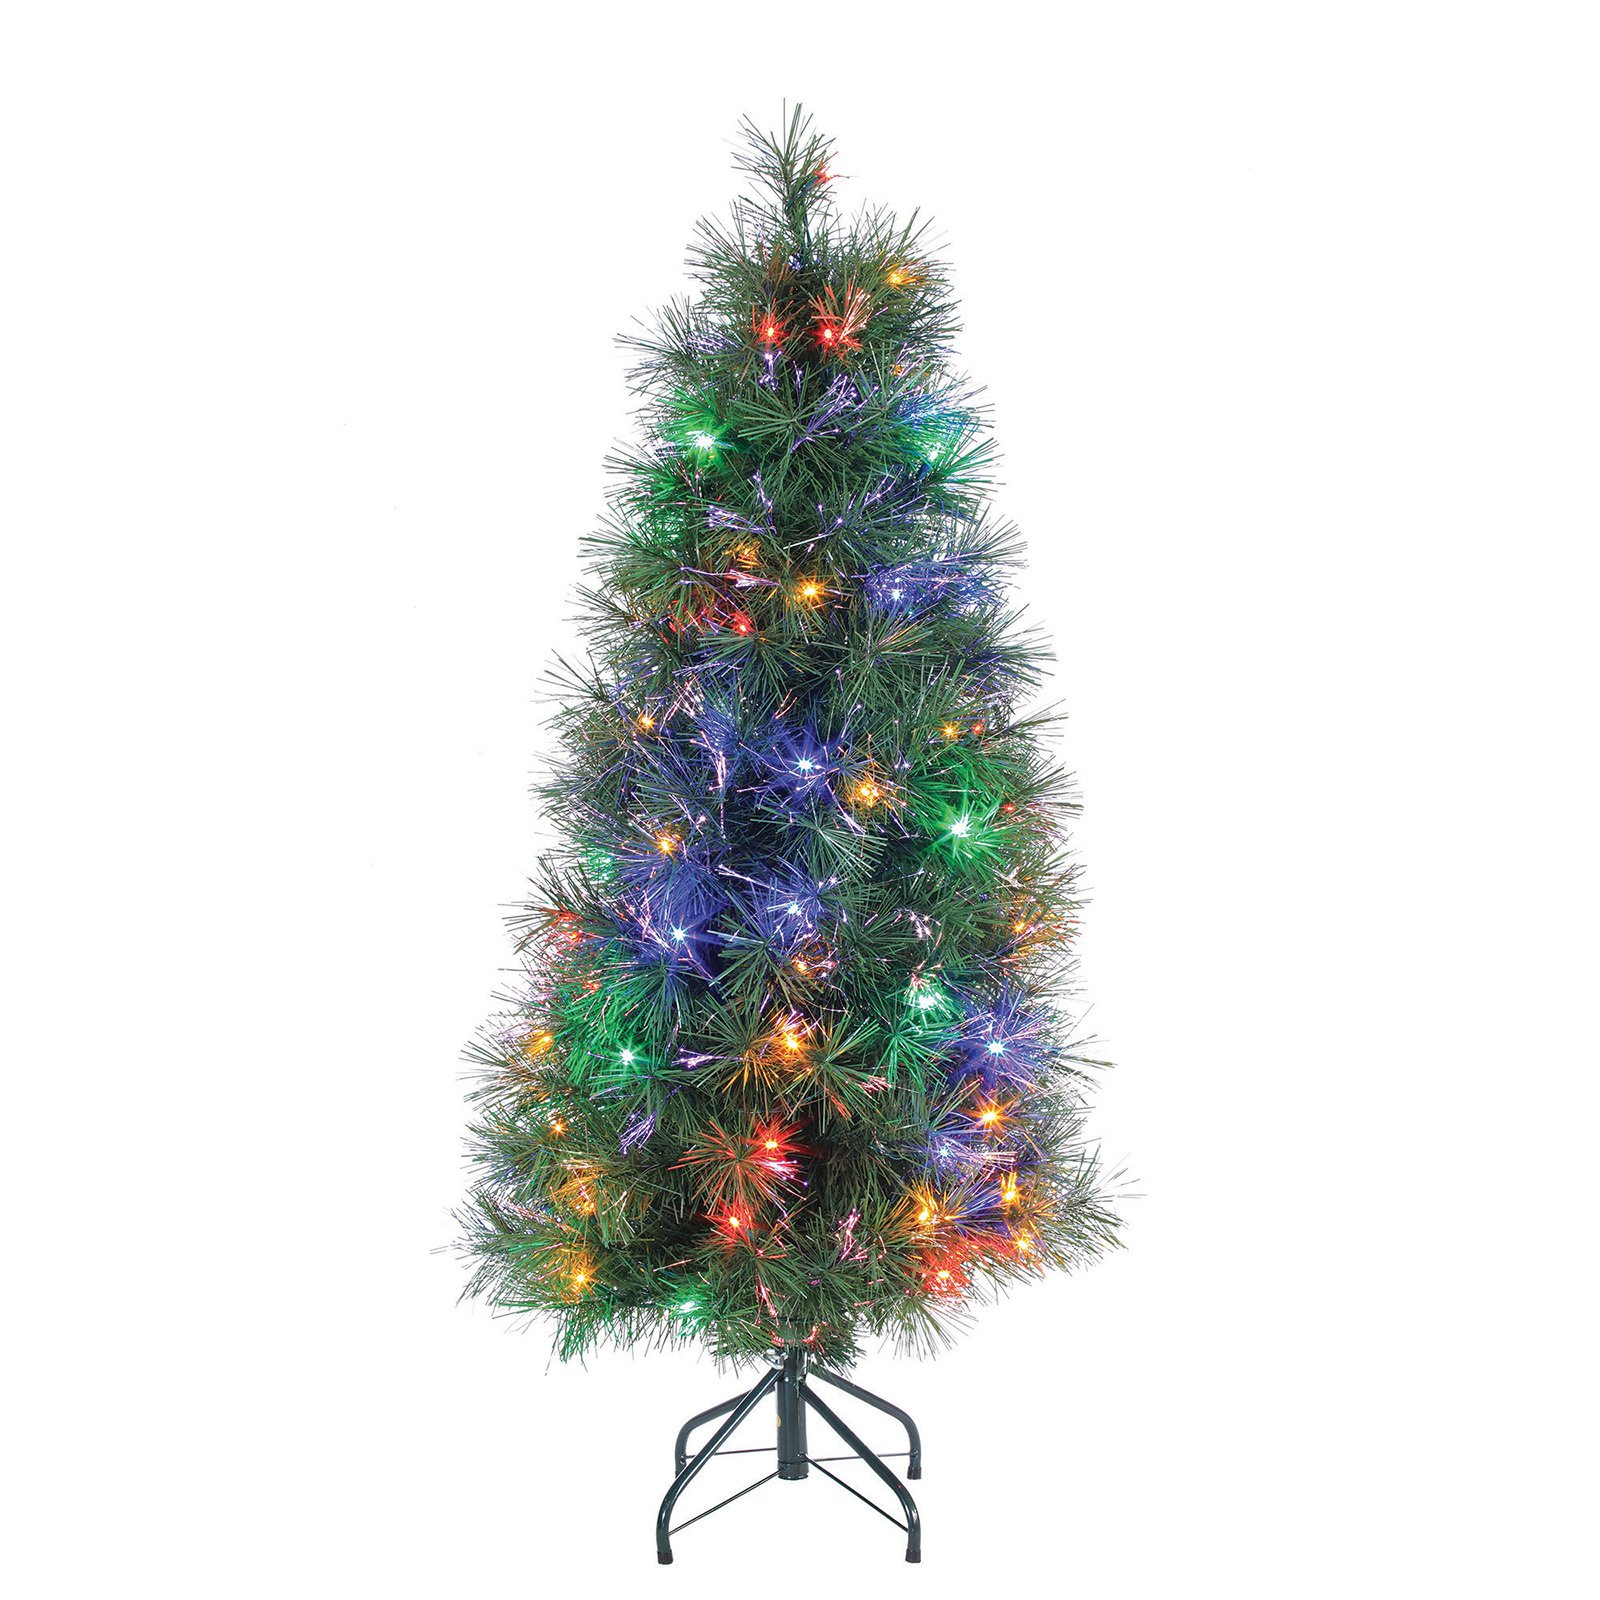 best choice products 7ft pre lit fiber optic artificial christmas pine tree w 280 lights 8 sequences stand green walmartcom - Pre Decorated Christmas Trees